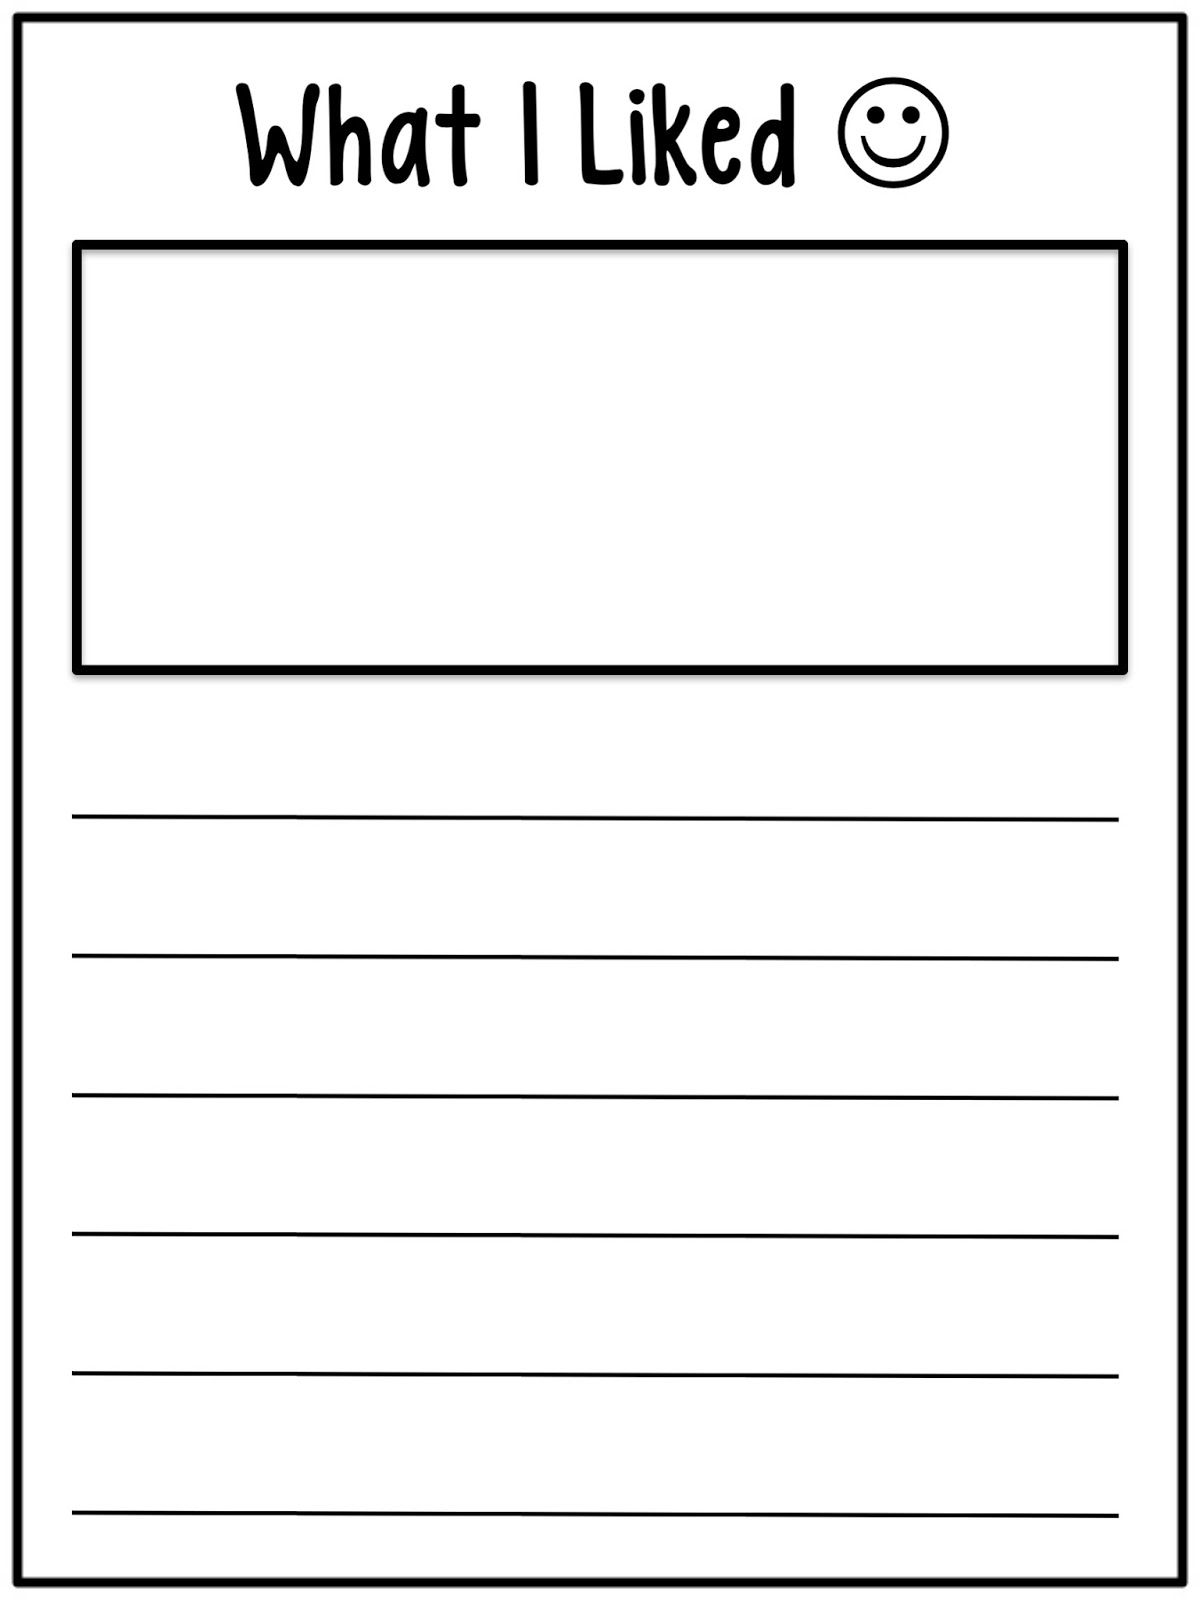 grade 1 writing paper 1st grade printing teacher's guide and my printing book student workbook introduce students to lowercase letters, review capitals, and teach word and sentence skills to prepare students for writing in all their classes.